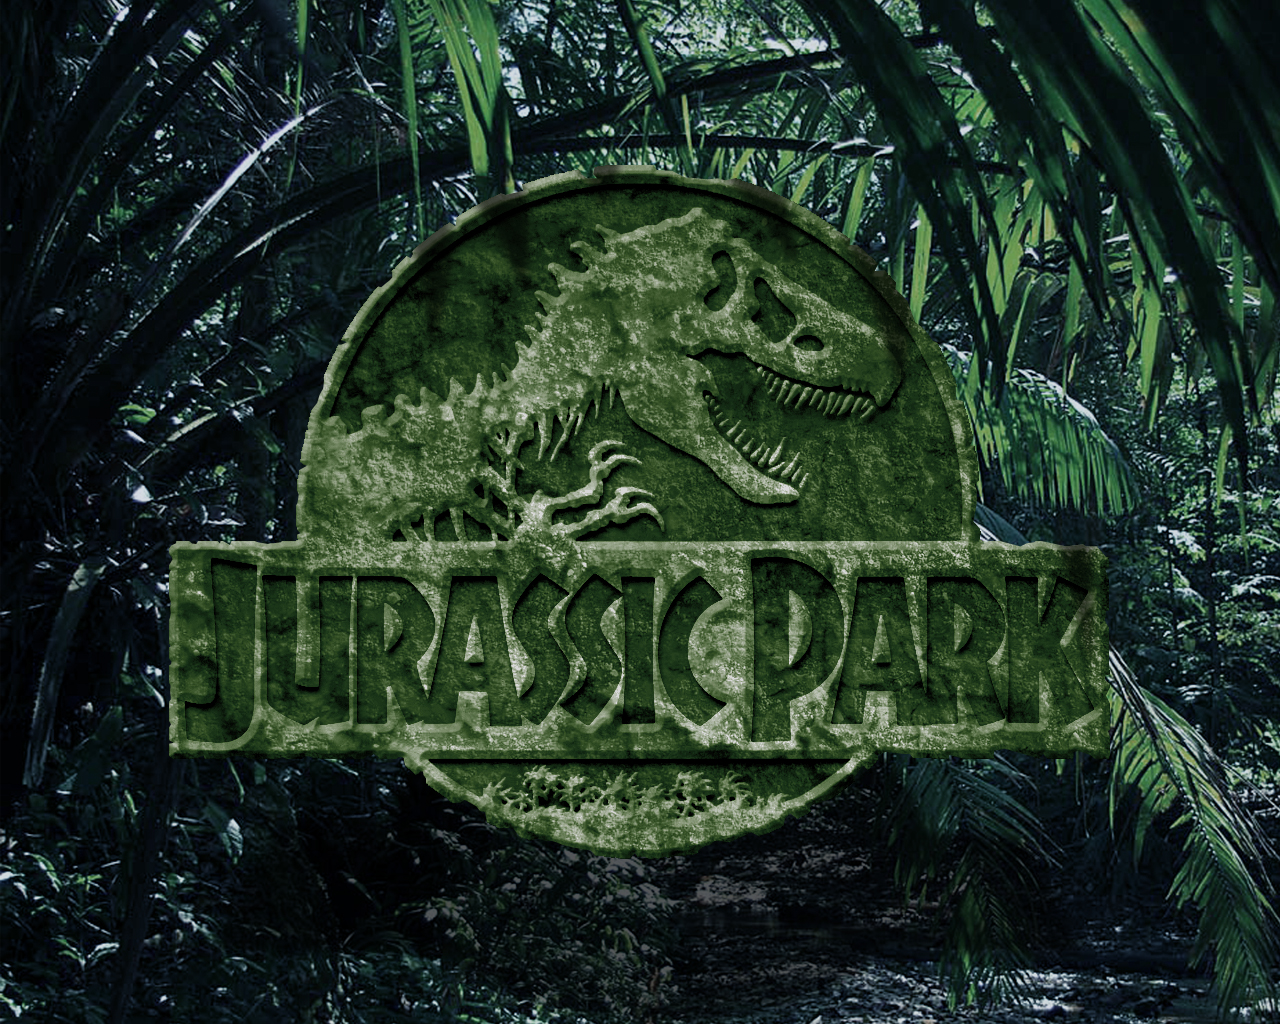 Free Download Jurassic Park Hd Wallpapers 1280x1024 For